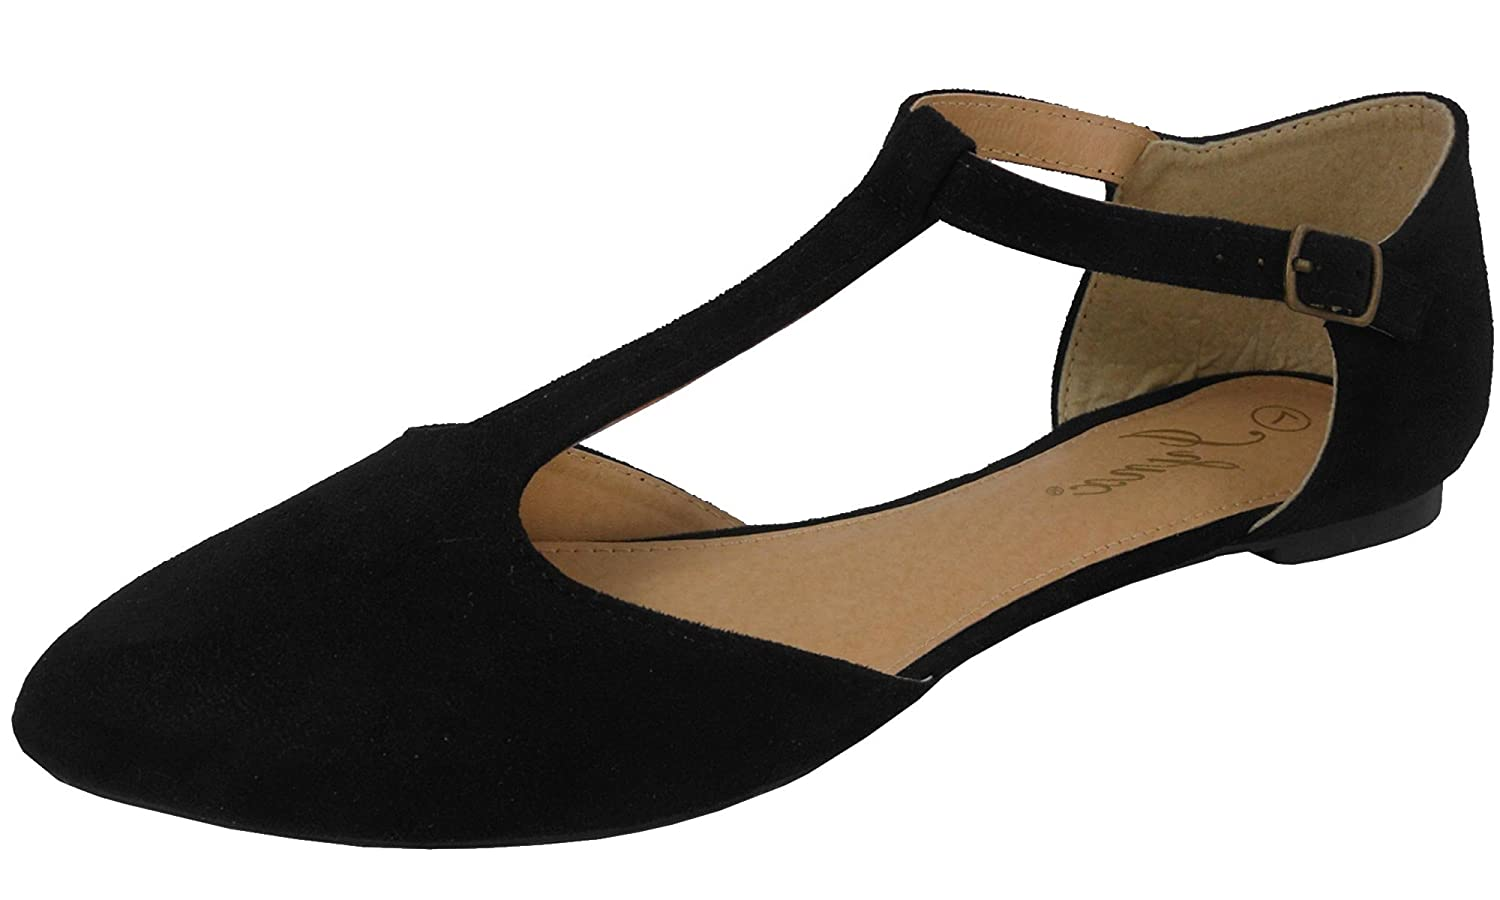 Vintage Style Shoes, Vintage Inspired Shoes Jynx Womens Mary Jane T-Strap Pointed Toe Ballet Flat $21.25 AT vintagedancer.com